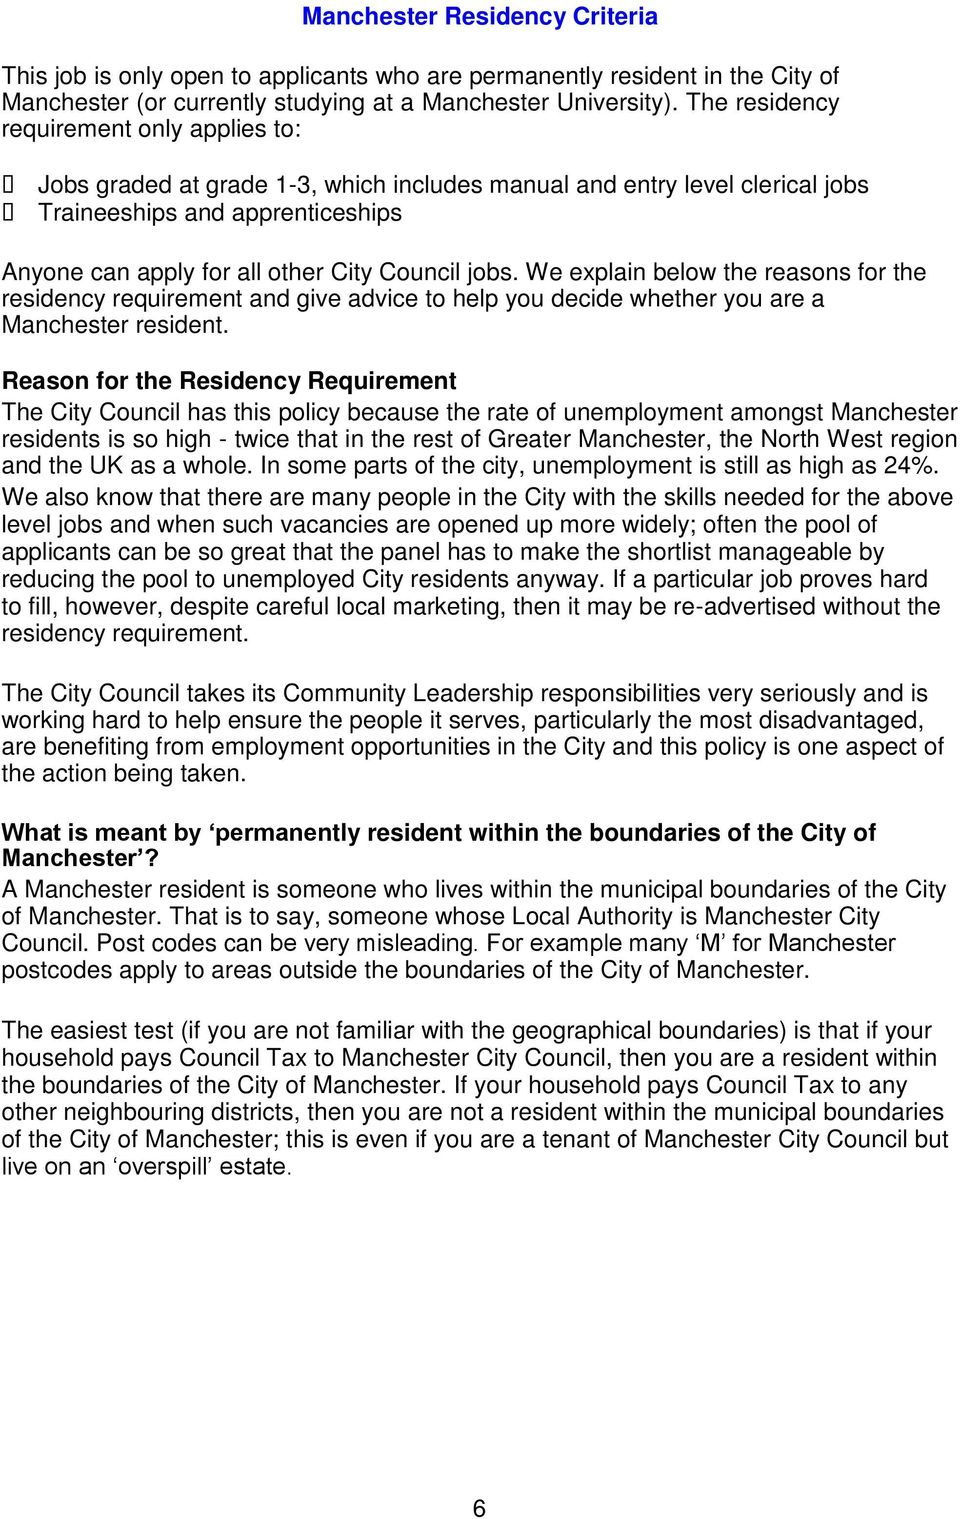 jobs. We explain below the reasons for the residency requirement and give advice to help you decide whether you are a Manchester resident.